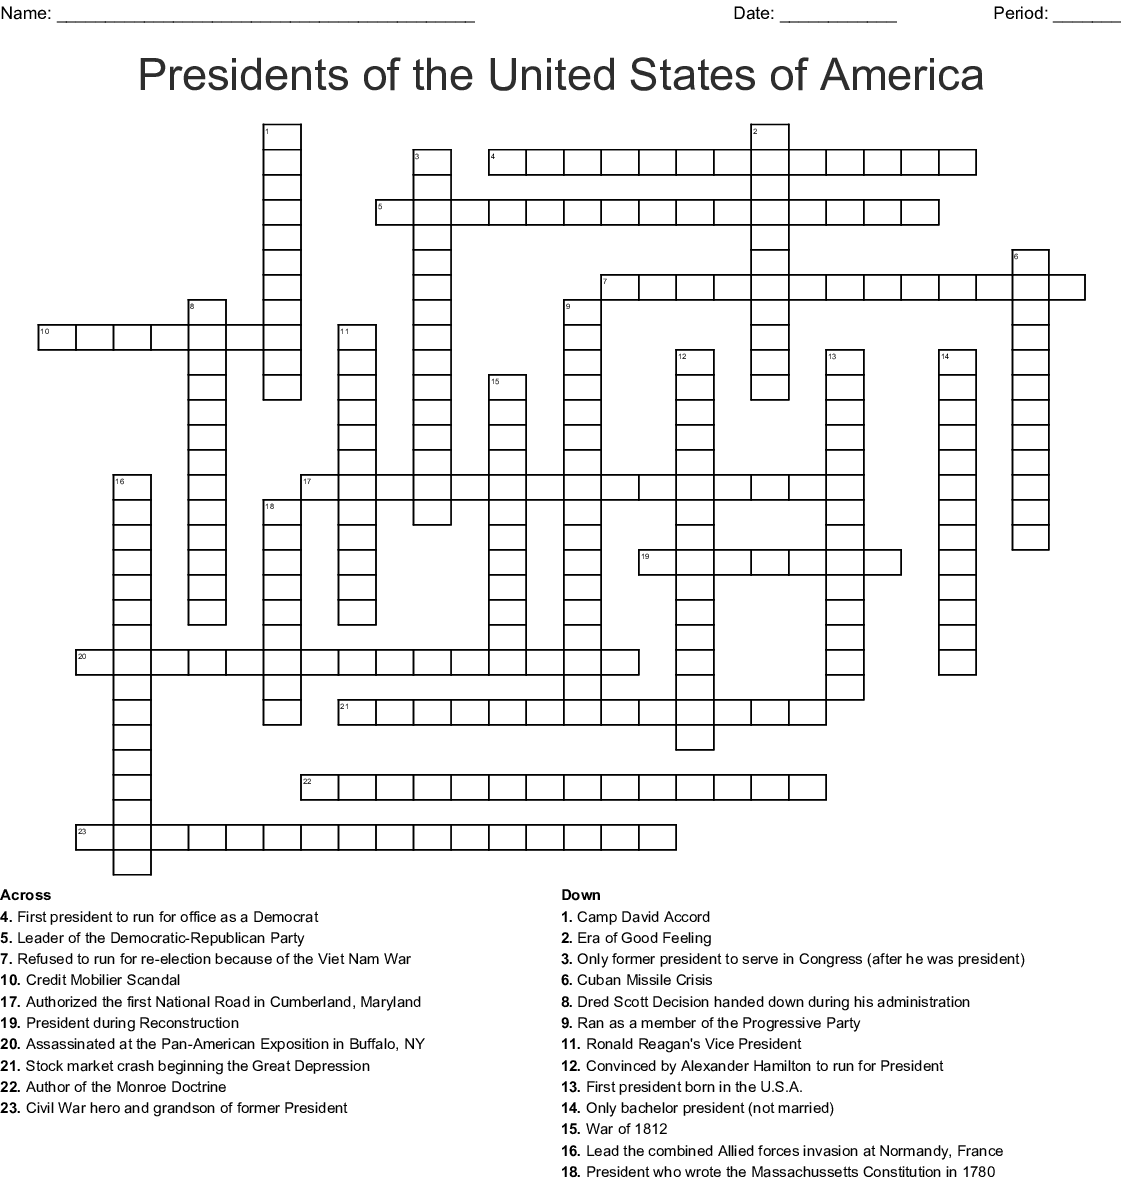 Presidents Of The United States Of America Crossword